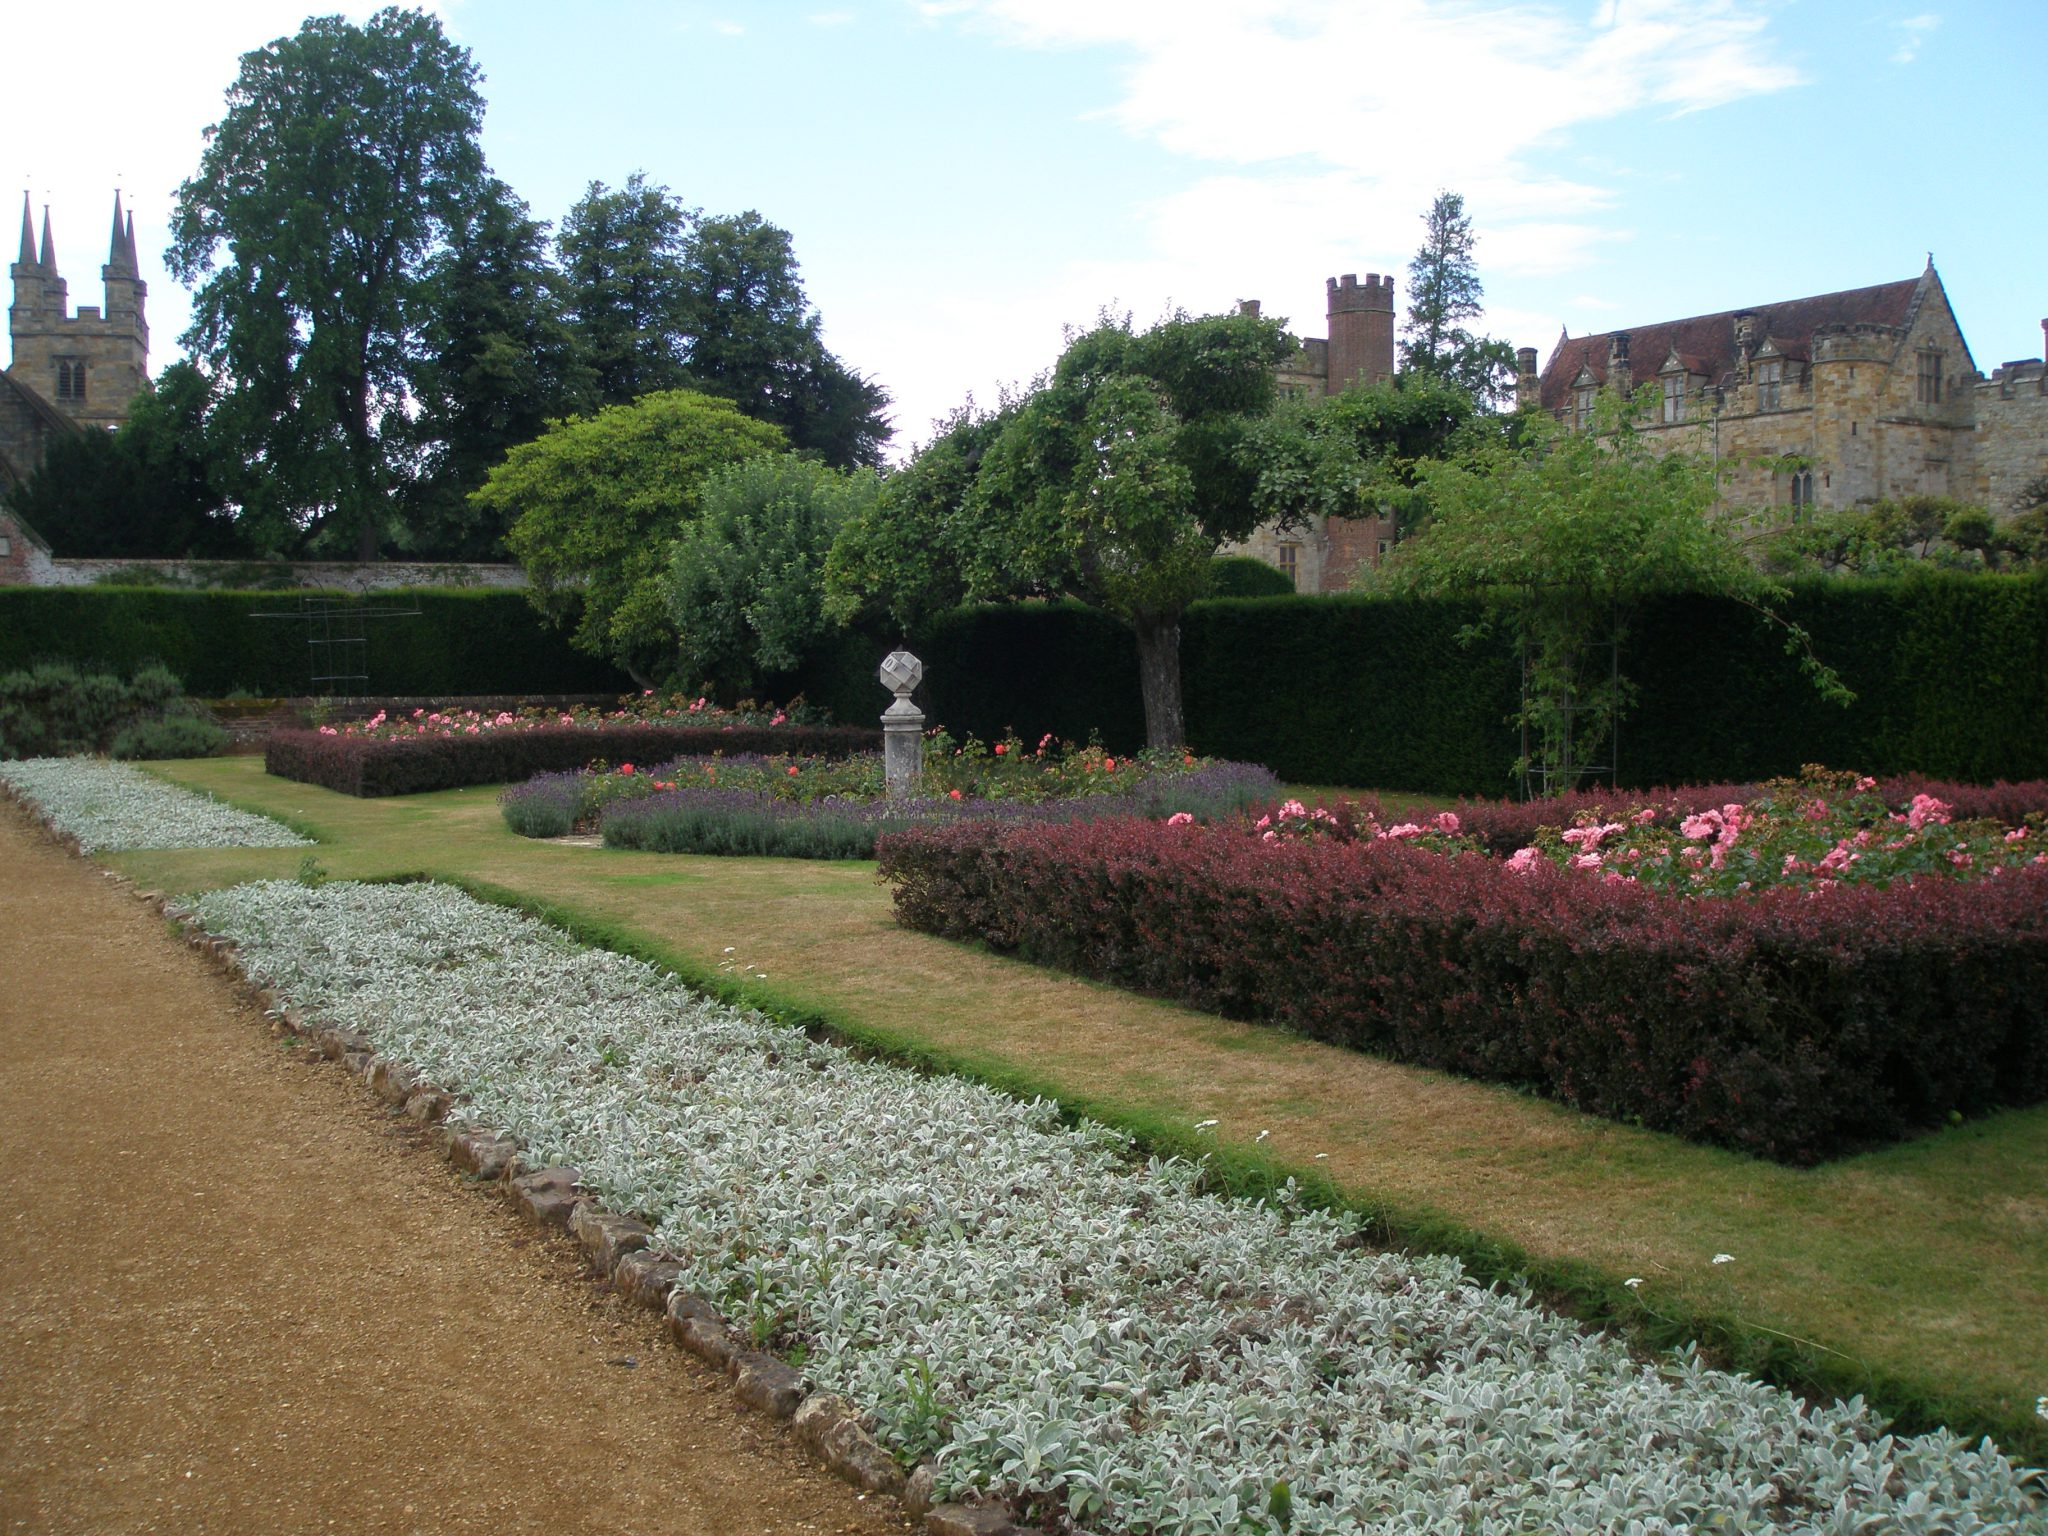 Another view of the Rose Garden, with church to the left, and the House to the right.